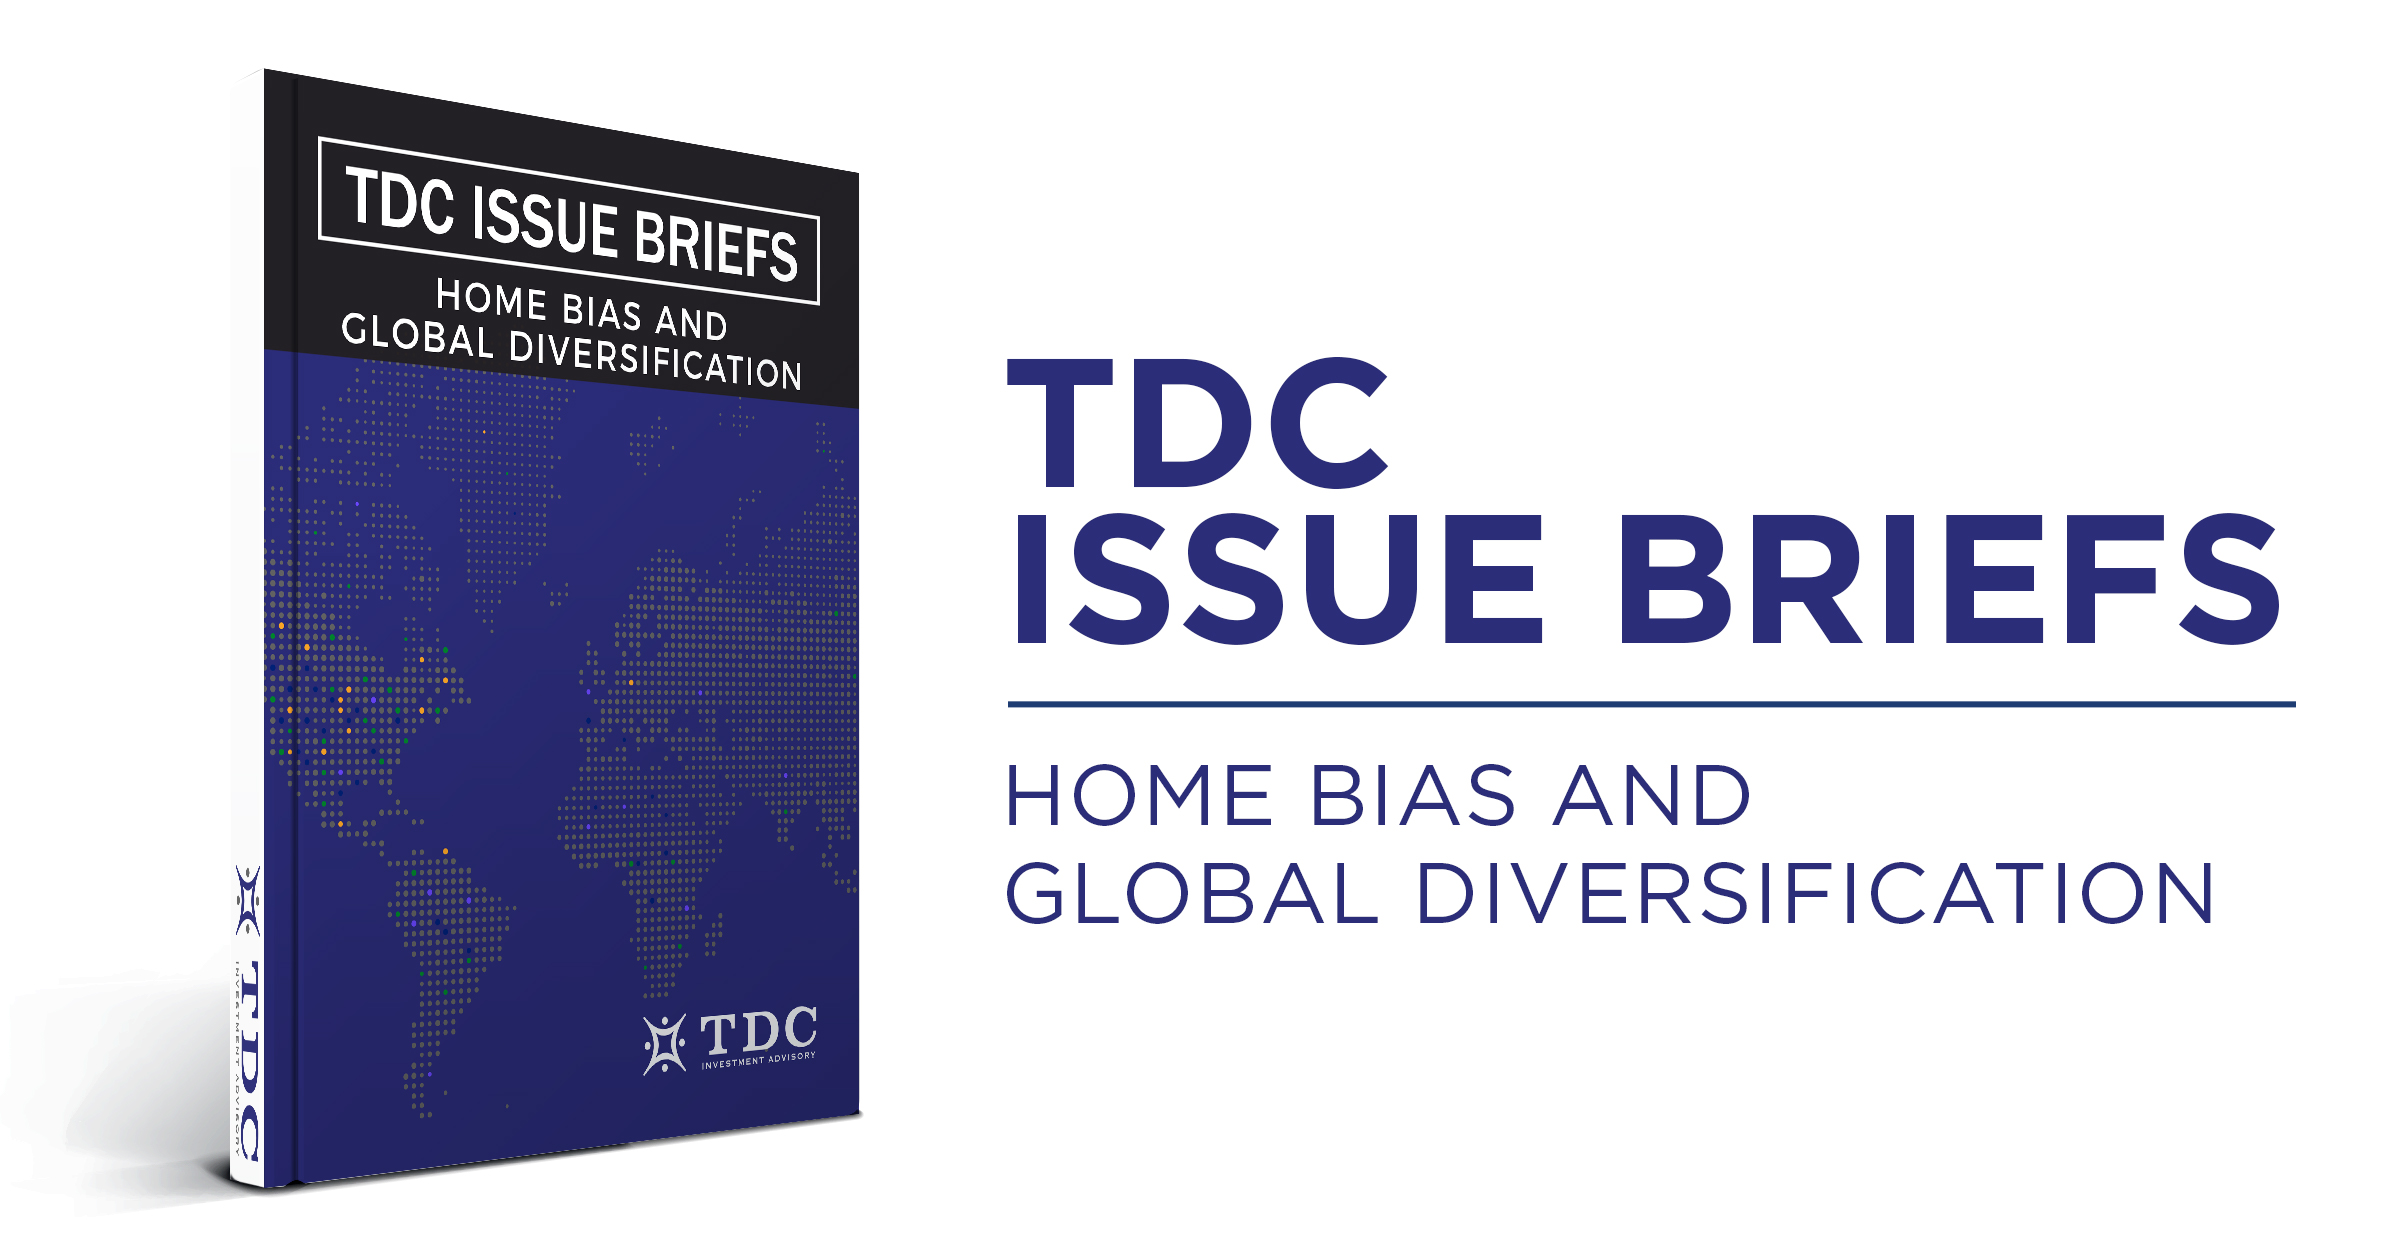 Home Bias and Global Diversification